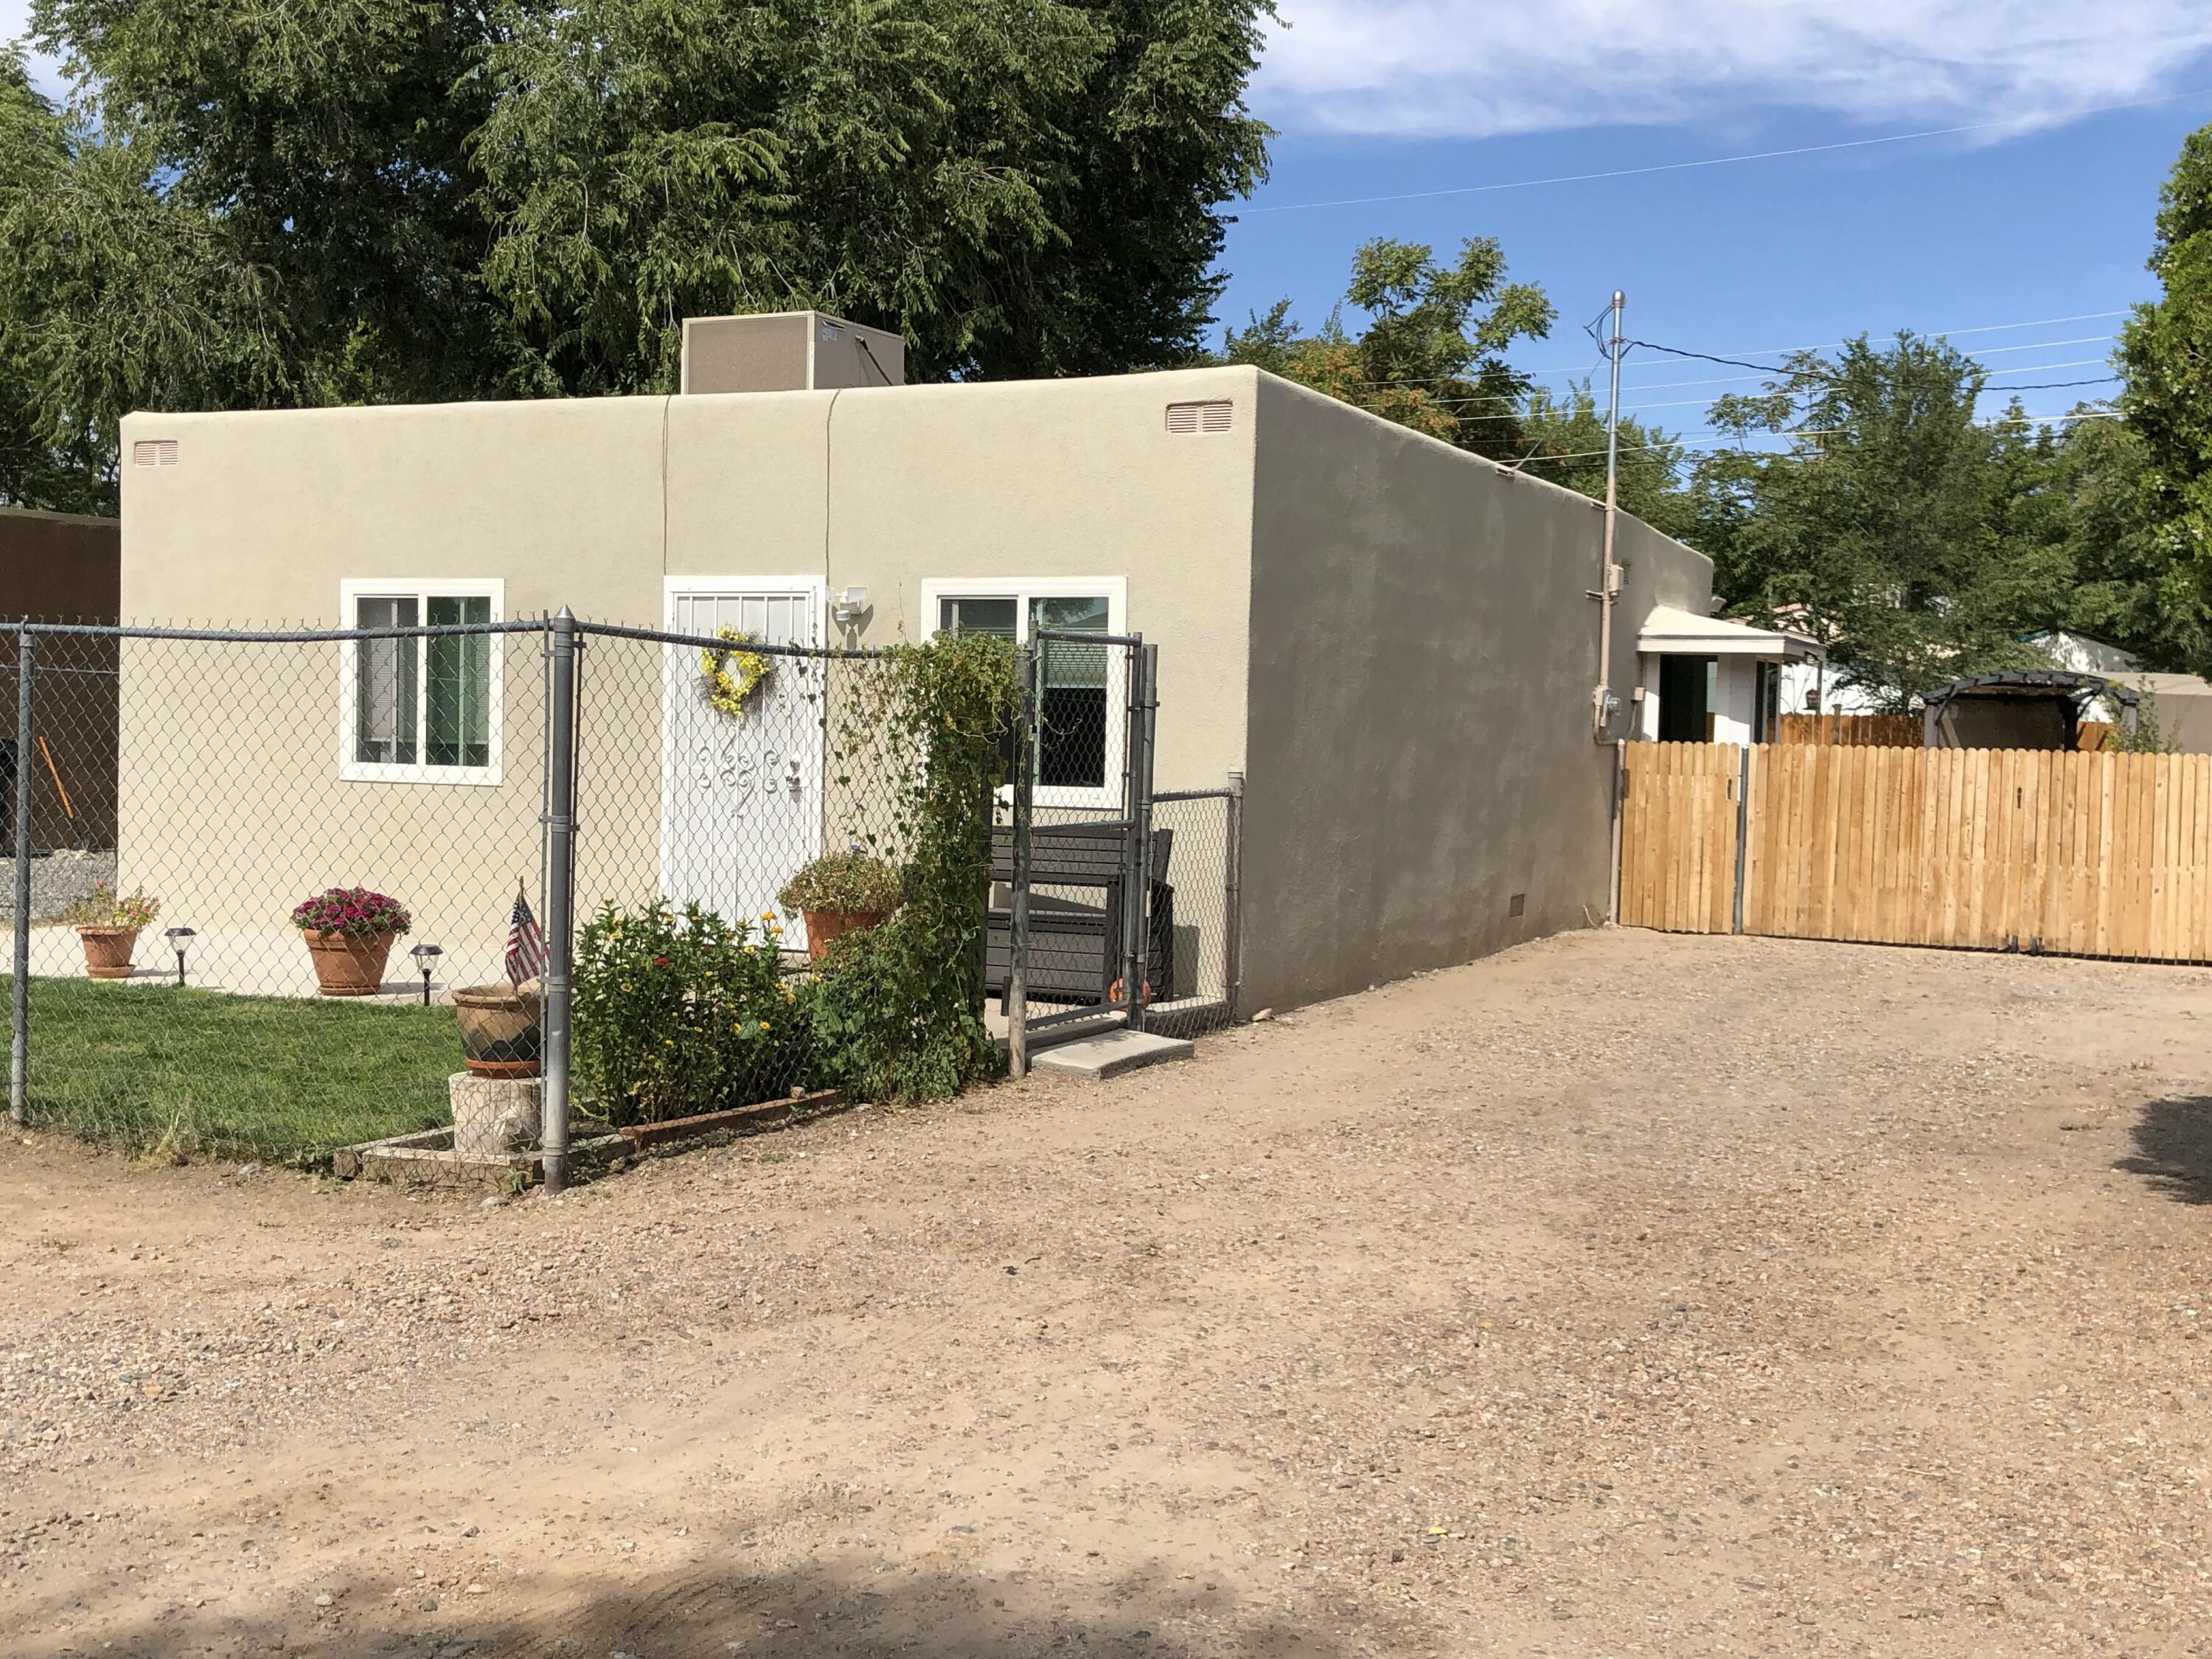 A must see south valley treasure. Lots of upgrades in this 3 Bedroom beauty. Roomy living area, great family kitchen and dining area. New 2021 bathroom. New 2021 synthetic stucco, 2021 Master cool unit.Double Pane Argon filled windows. Large backyard with cozy pergola sitting area for entertaining. Backyard access with fenced and gated front and backyard. 3 vary spacious  bedrooms. Fresh Home ready for it's new family.